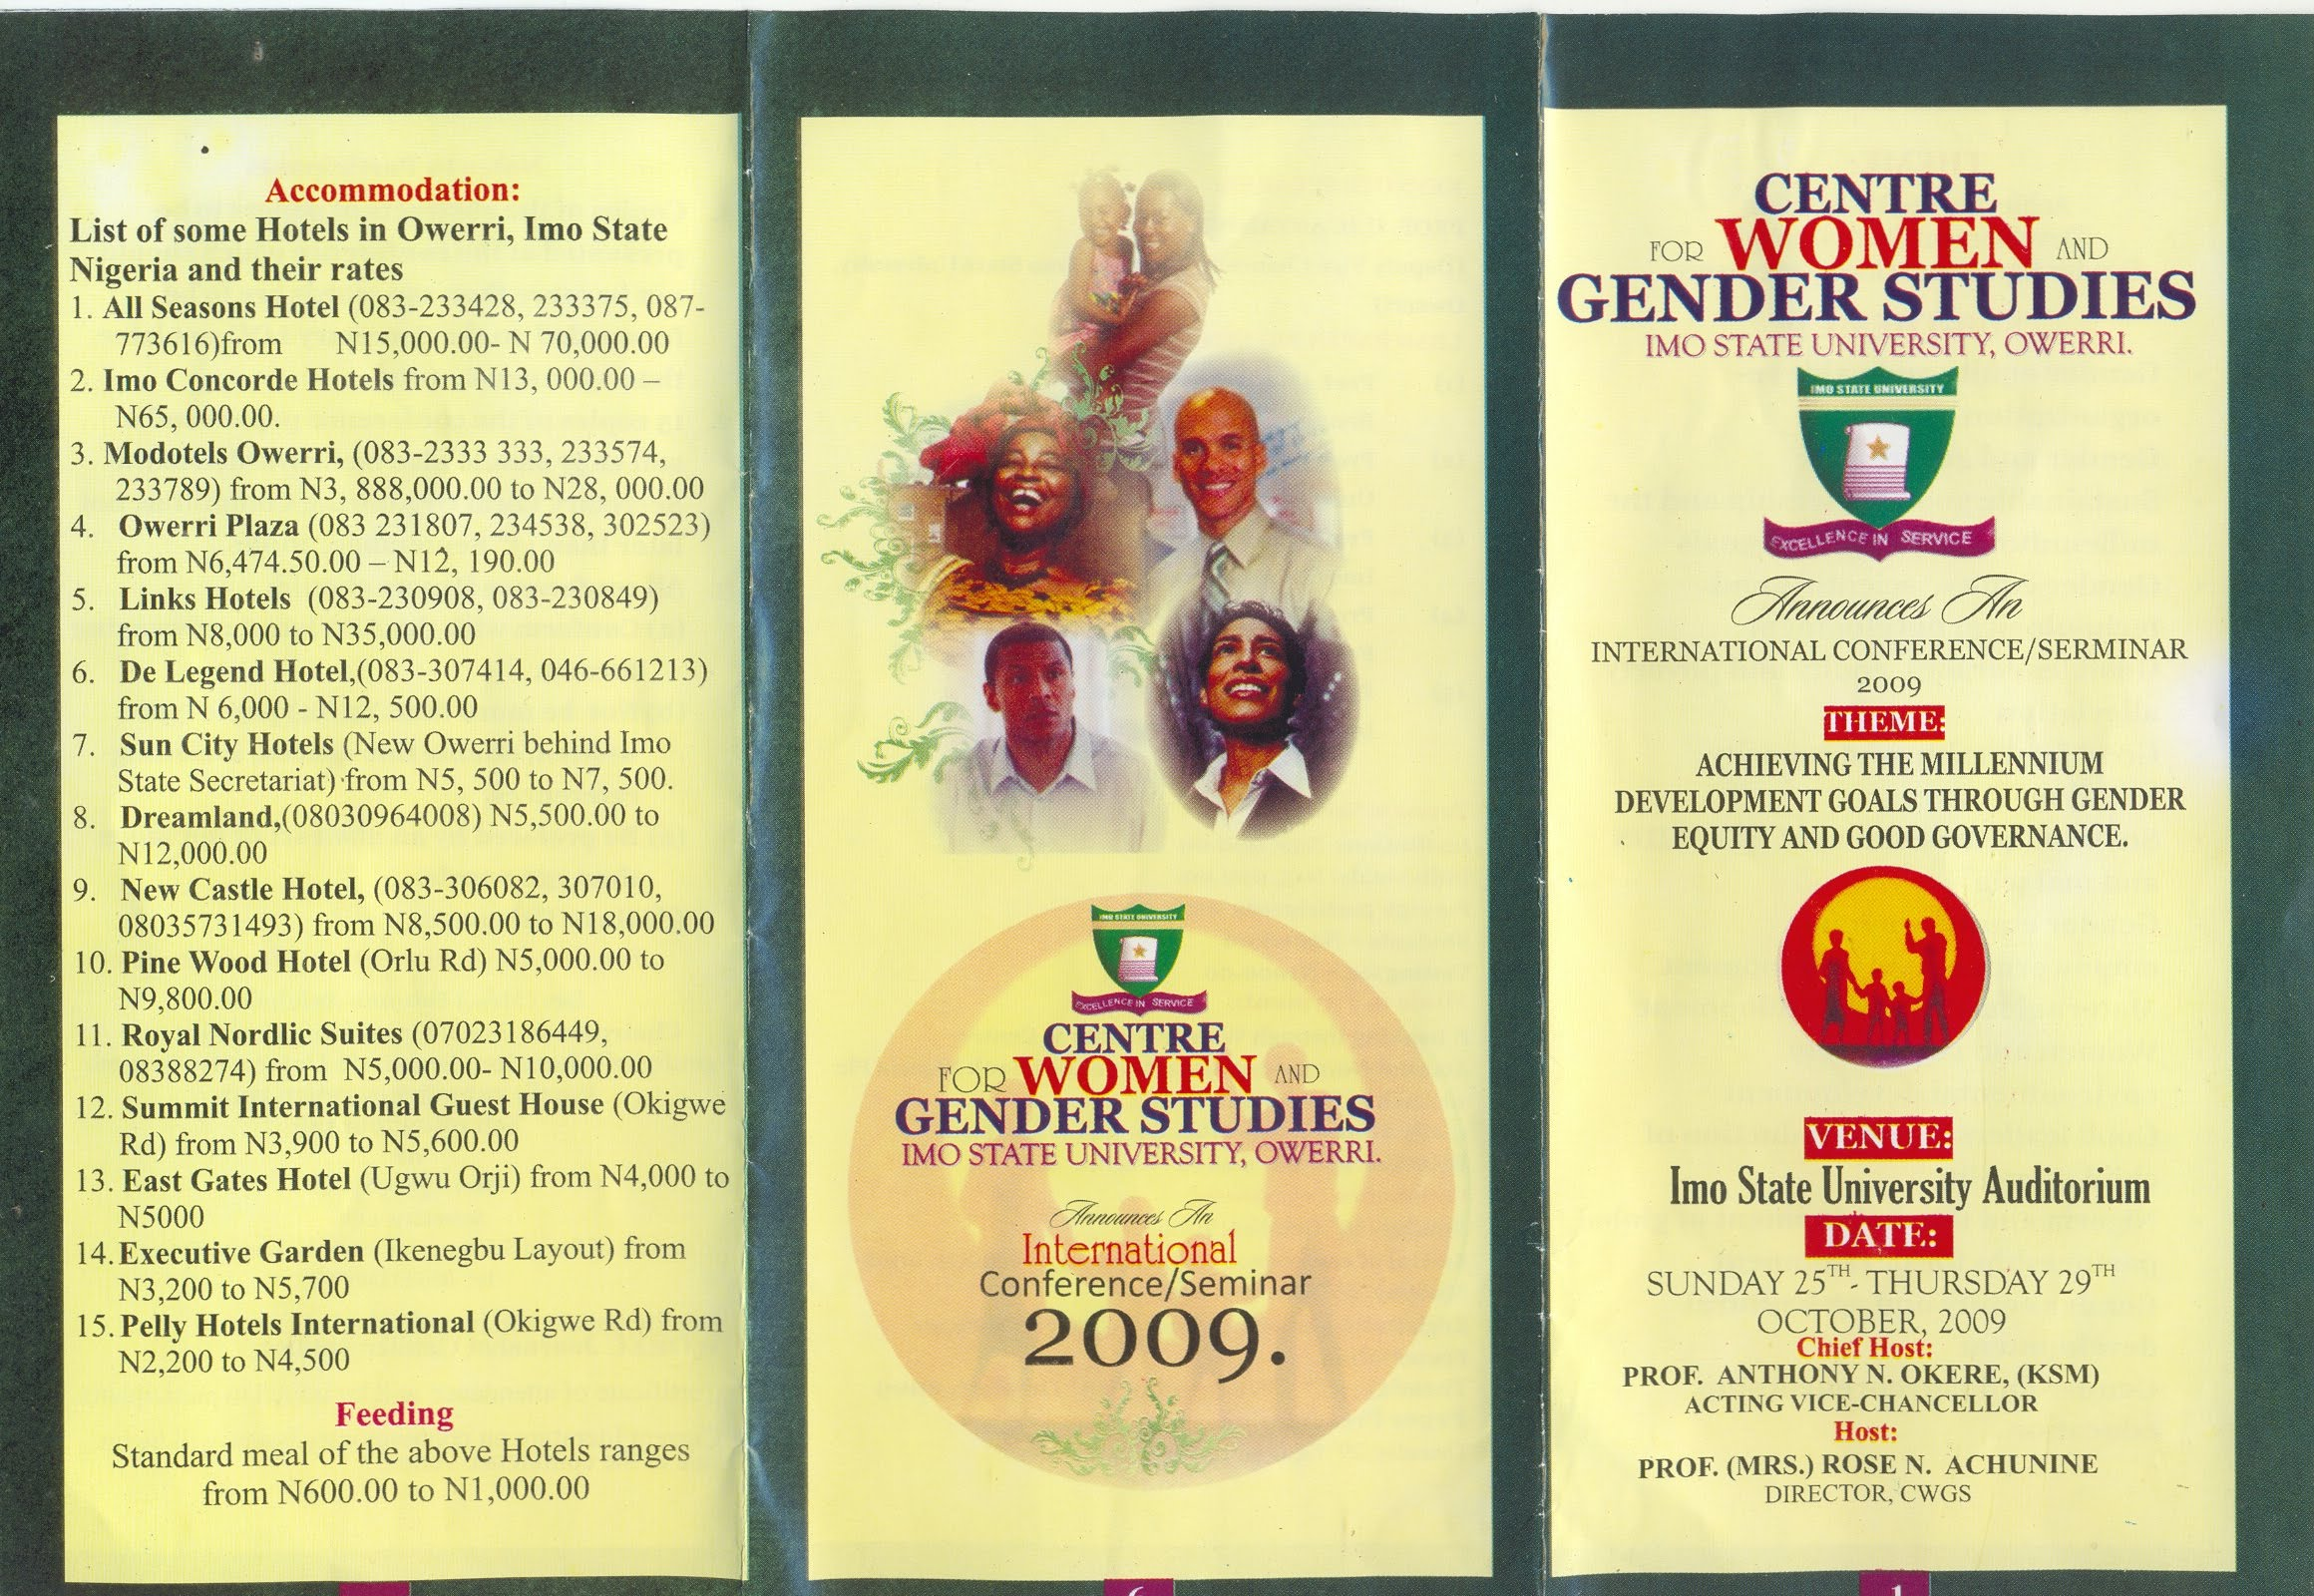 CENTER FOR WOMEN AND GENDER STUDIES (CWGS), IMSU - IMO STATE